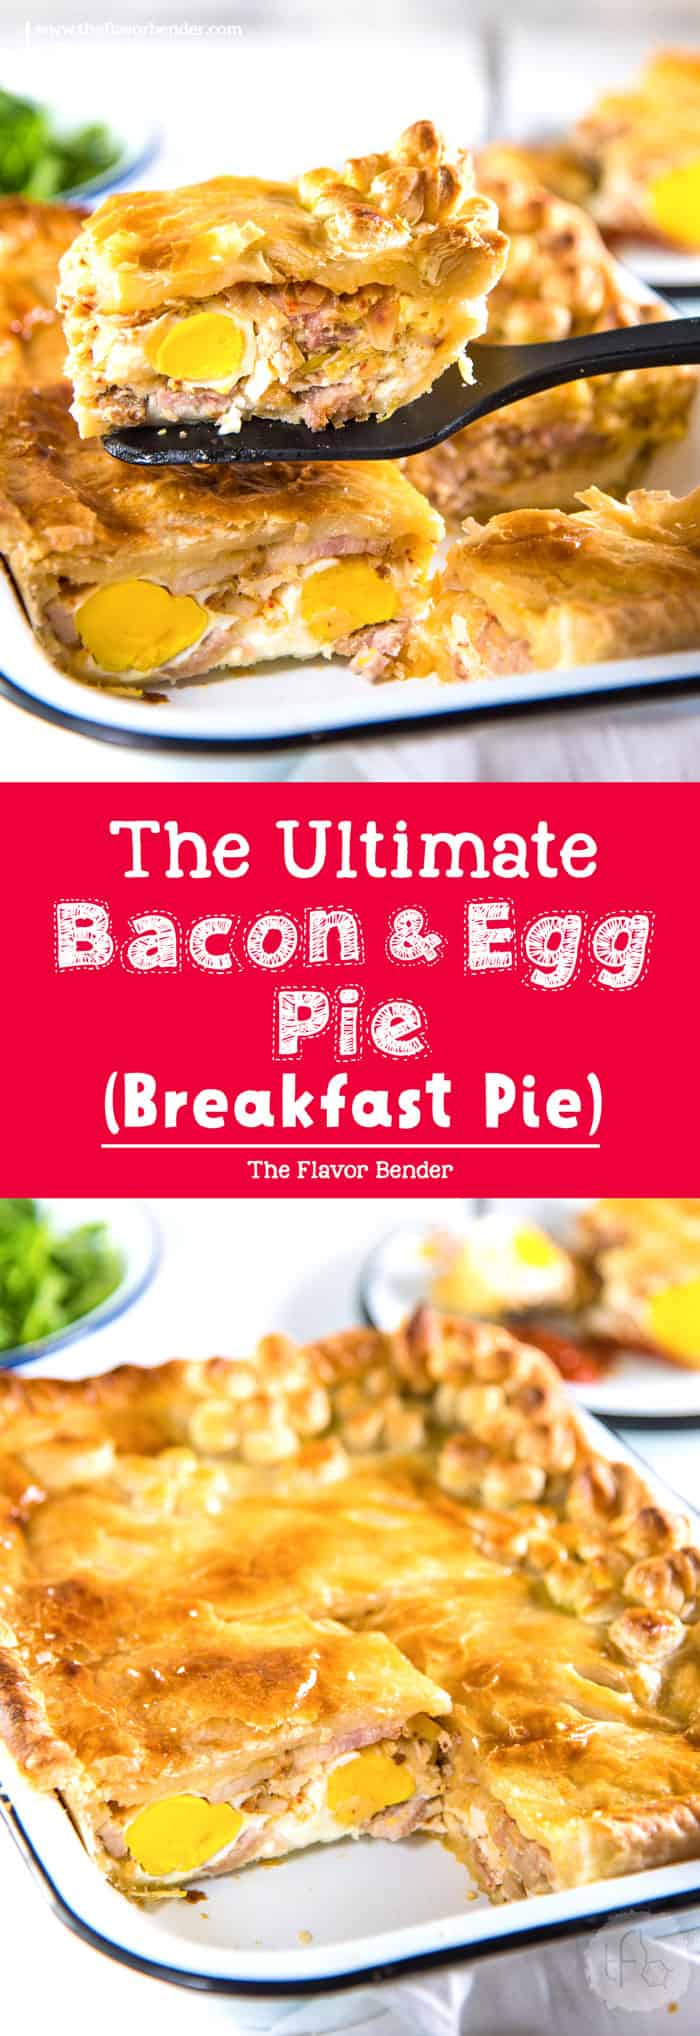 Ultimate Bacon And Egg Pies Breakfast Pies Are A New Zealand Classic With Smokey Bacon And Eggs Breakfast Pie Breakfast Brunch Recipes Breakfast Recipes Easy